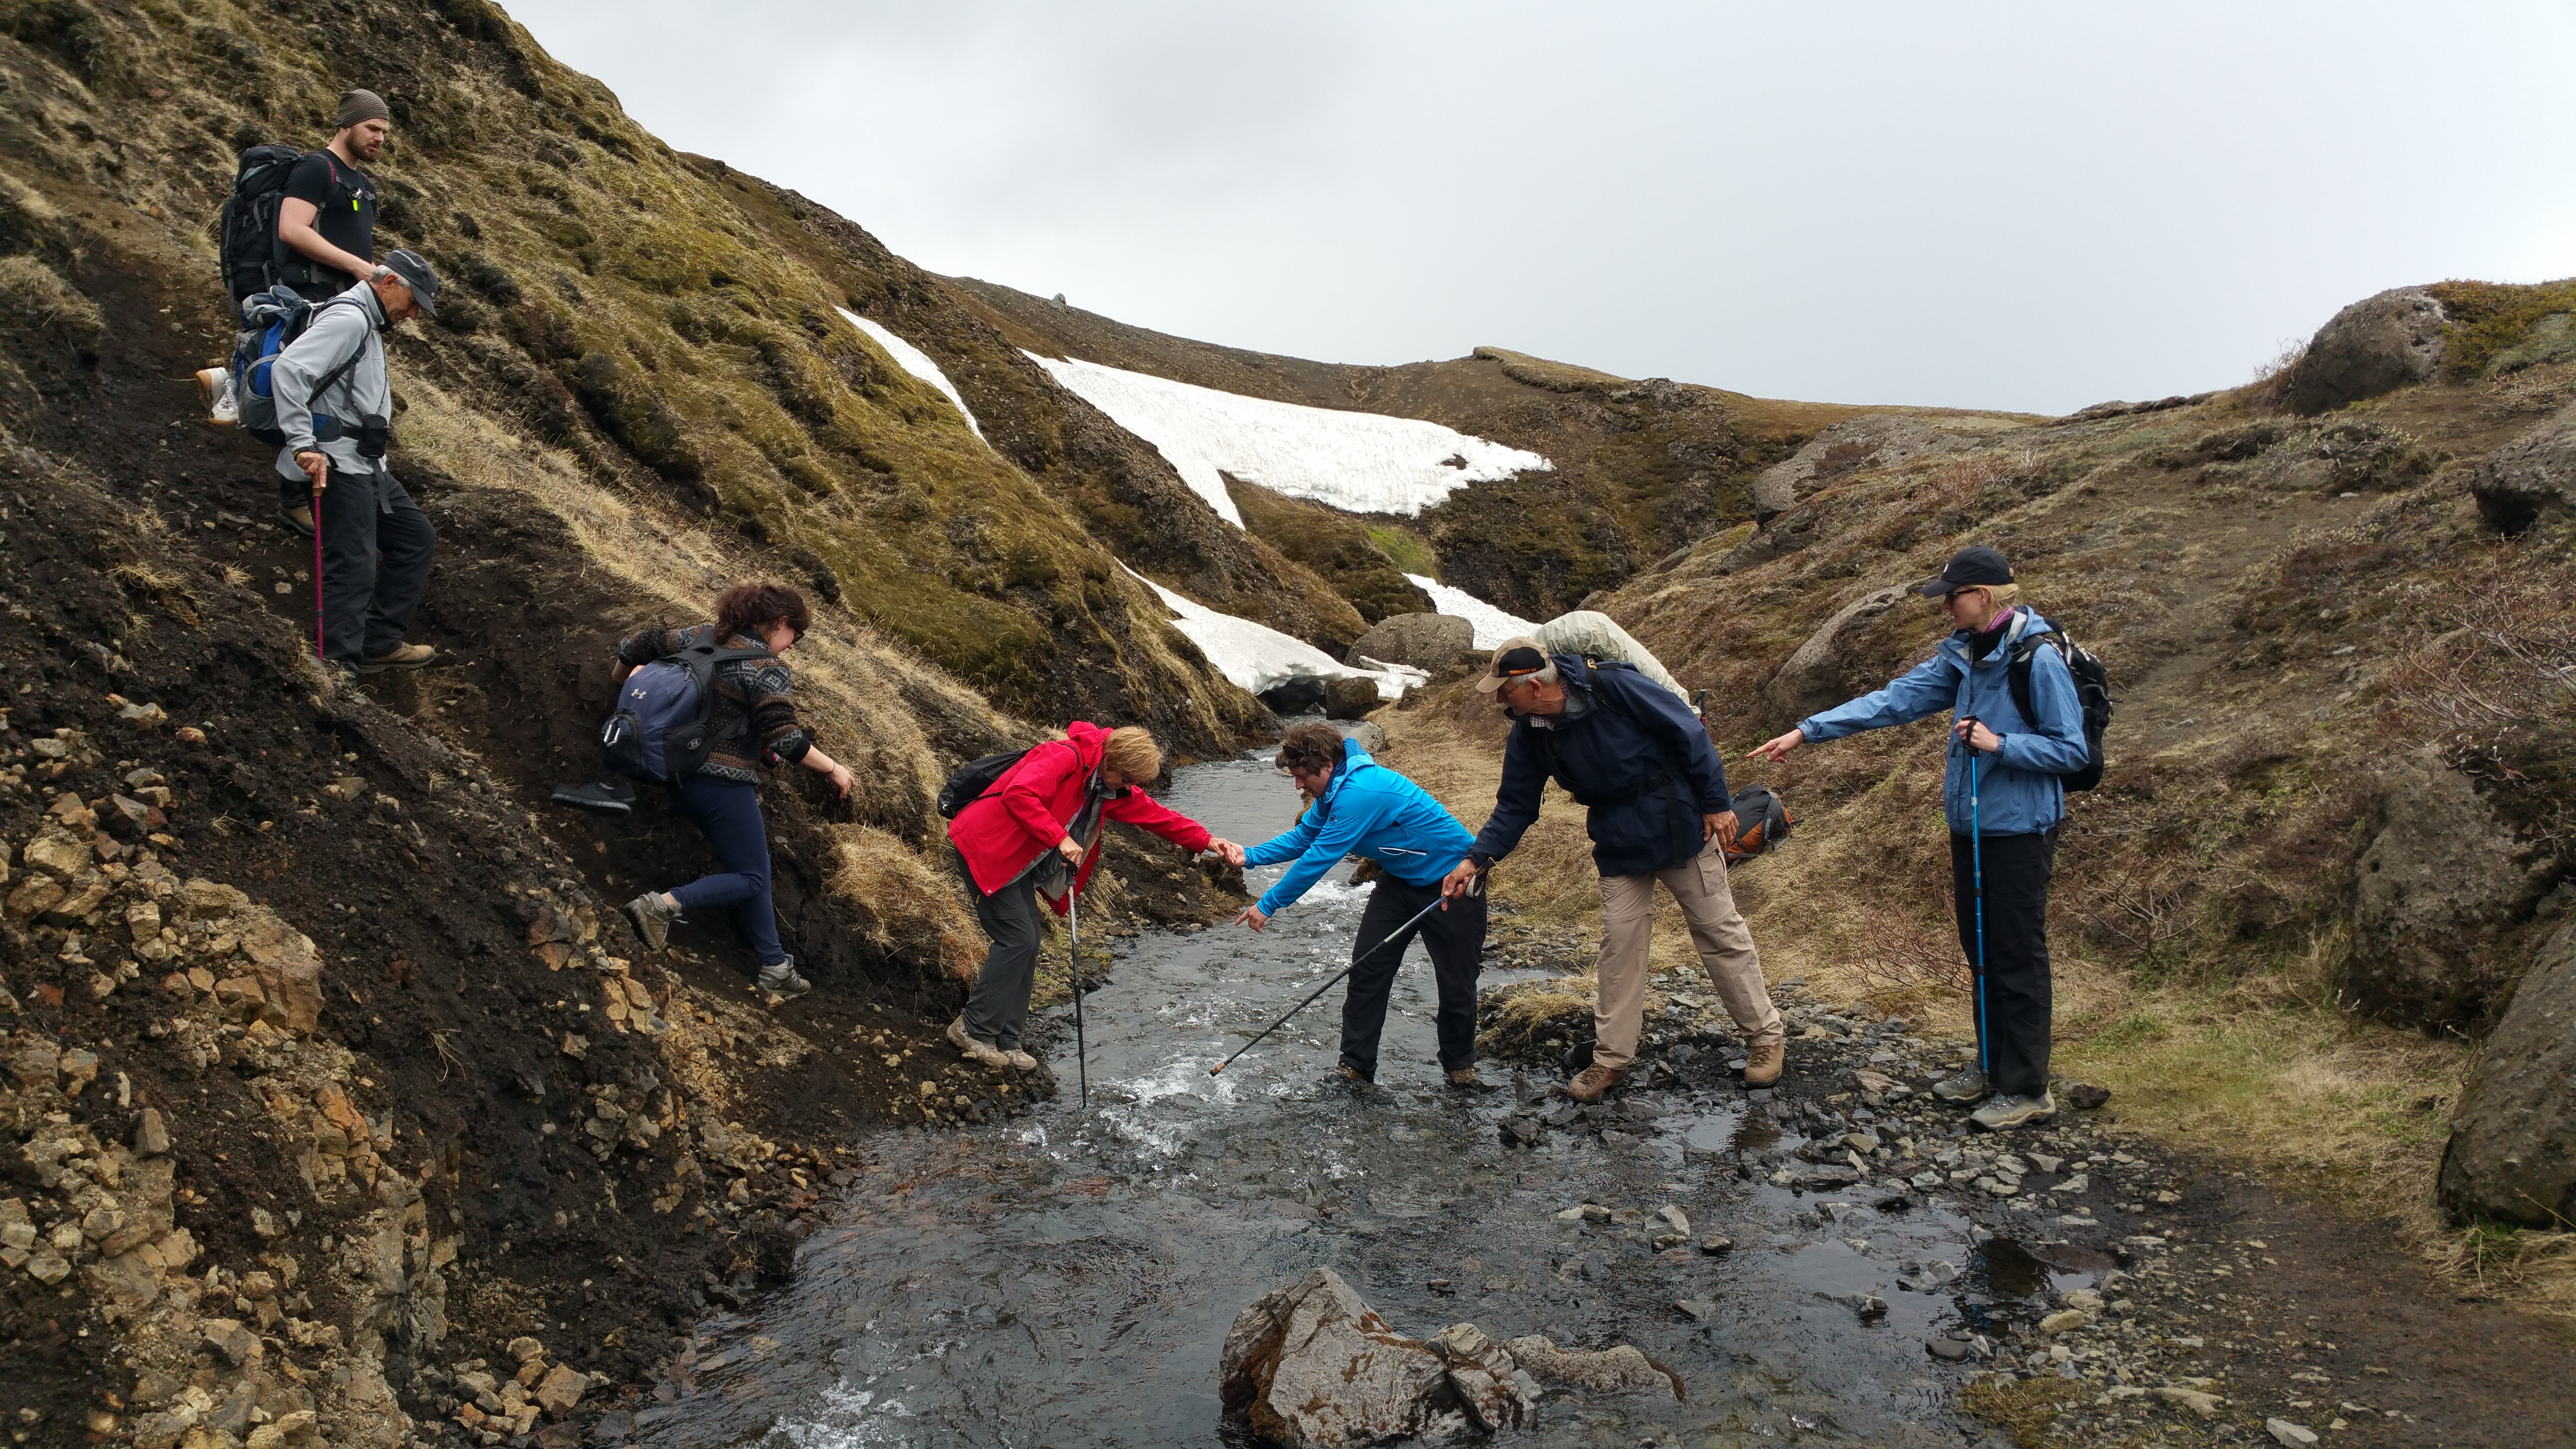 Hiking in Iceland 5th-10th of July 2021